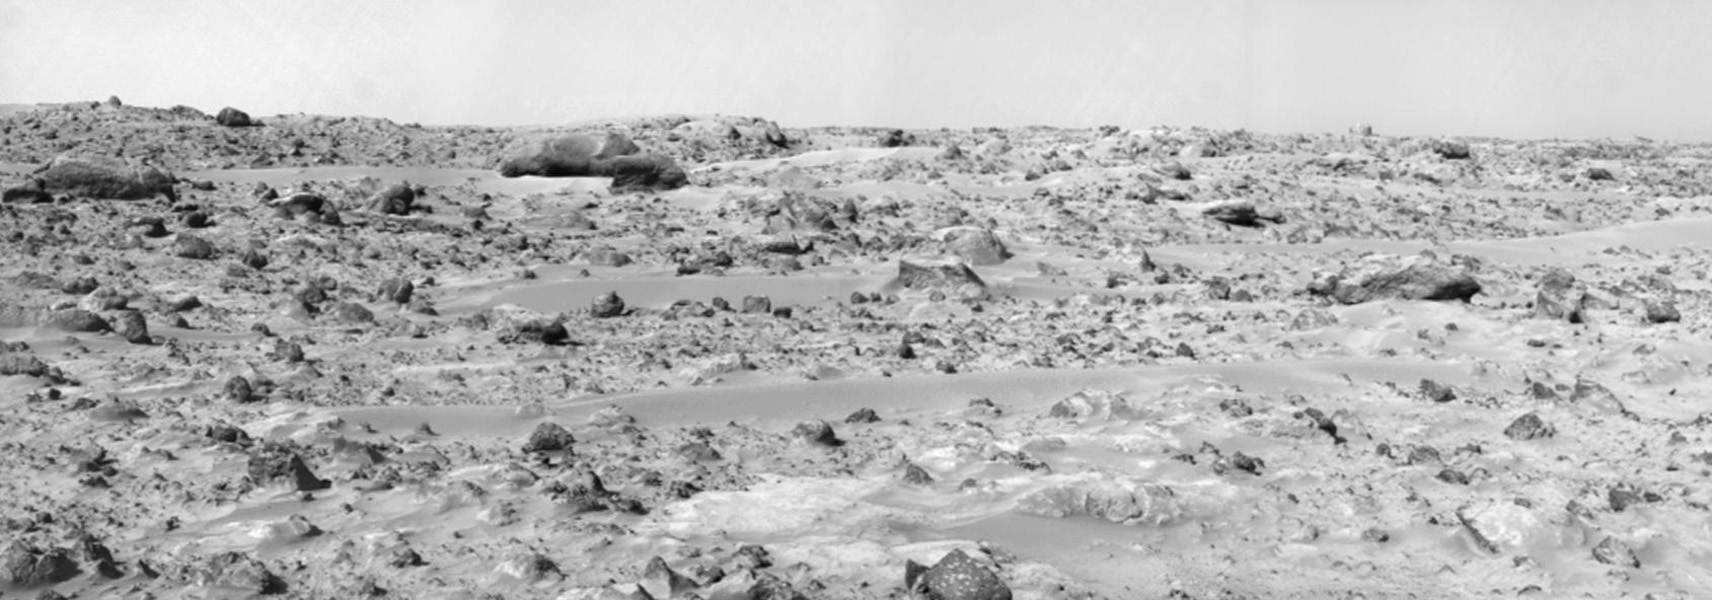 This view from NASA's Mars Pathfinder was produced in 1997 by combining 8 individual 'Superpan' scenes from the left and right eyes of the IMP camera. The large, elongated rock 'Zaphod' sits left of center in the middle distance.